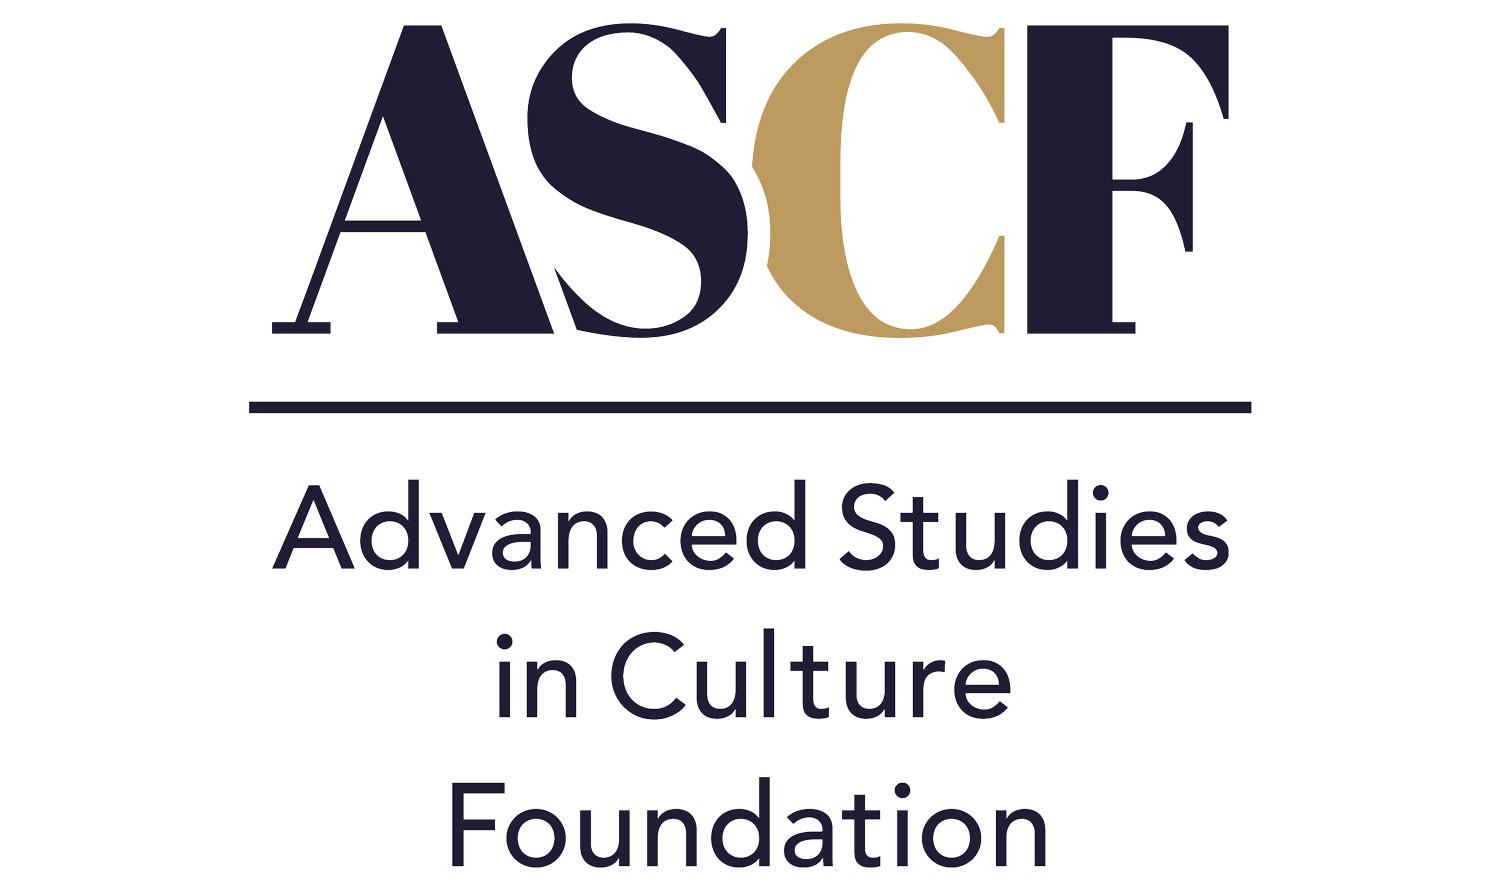 Advanced Studies in Culture Foundation logo